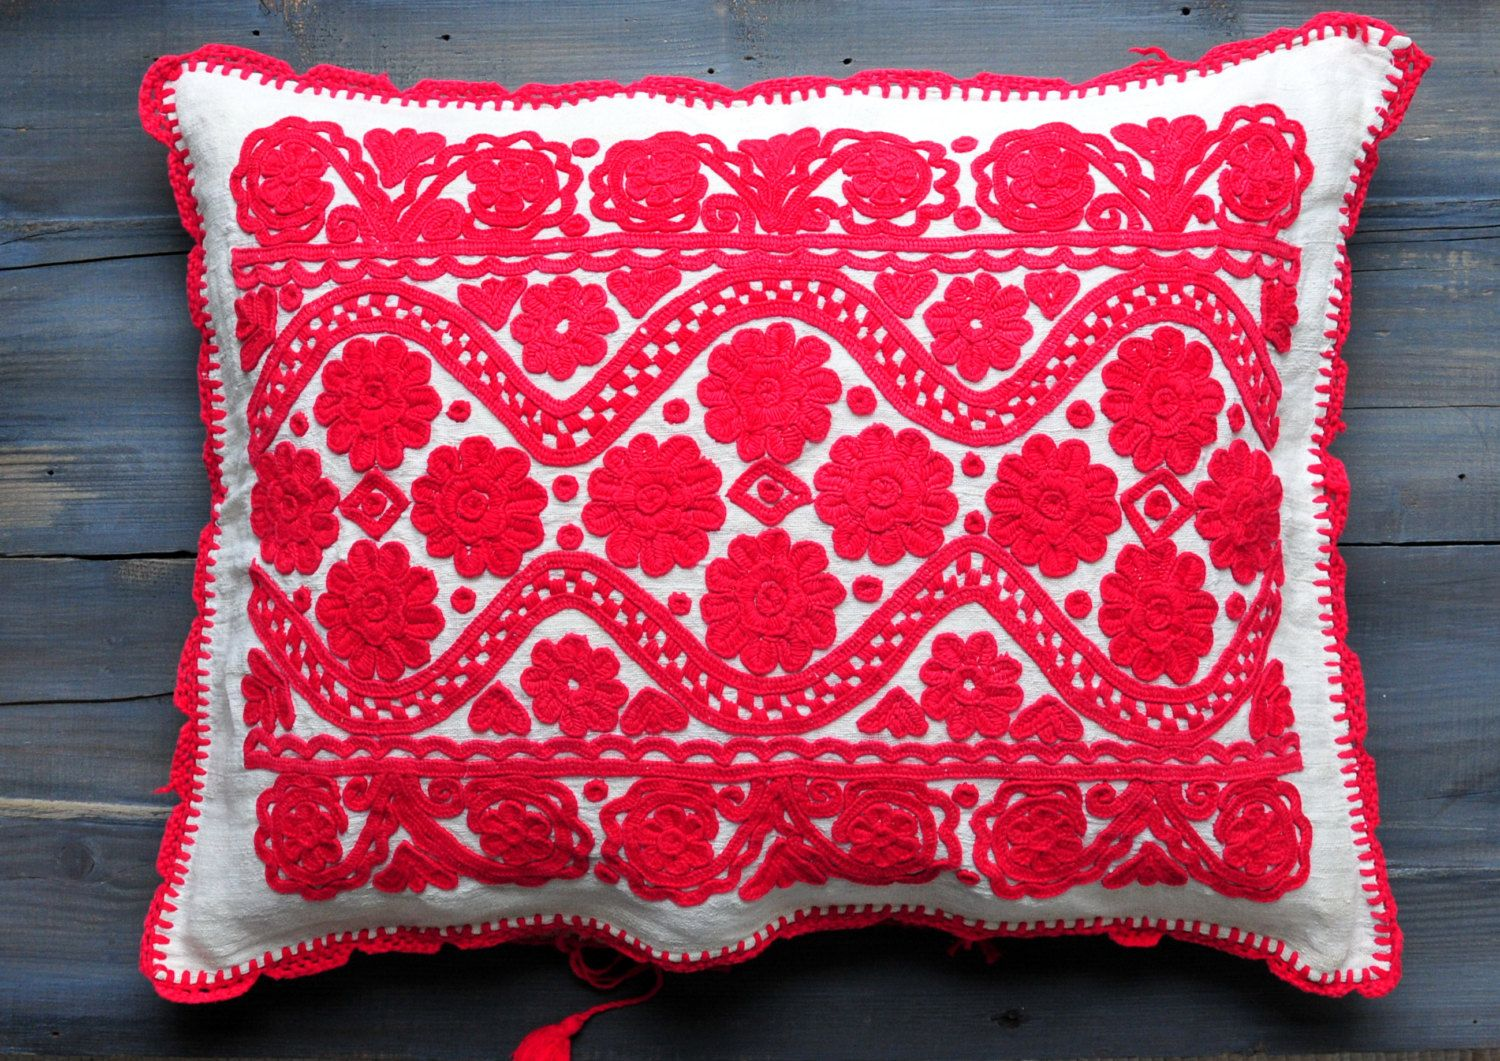 Hand Embroidered Pillocase, Embroidered Pillow, Ethnic Pillow, Folk Embroidered pillow, Linen Pillowcase, Red Embroidery, Floral Embroidery, by ColoursAndSoul on Etsy